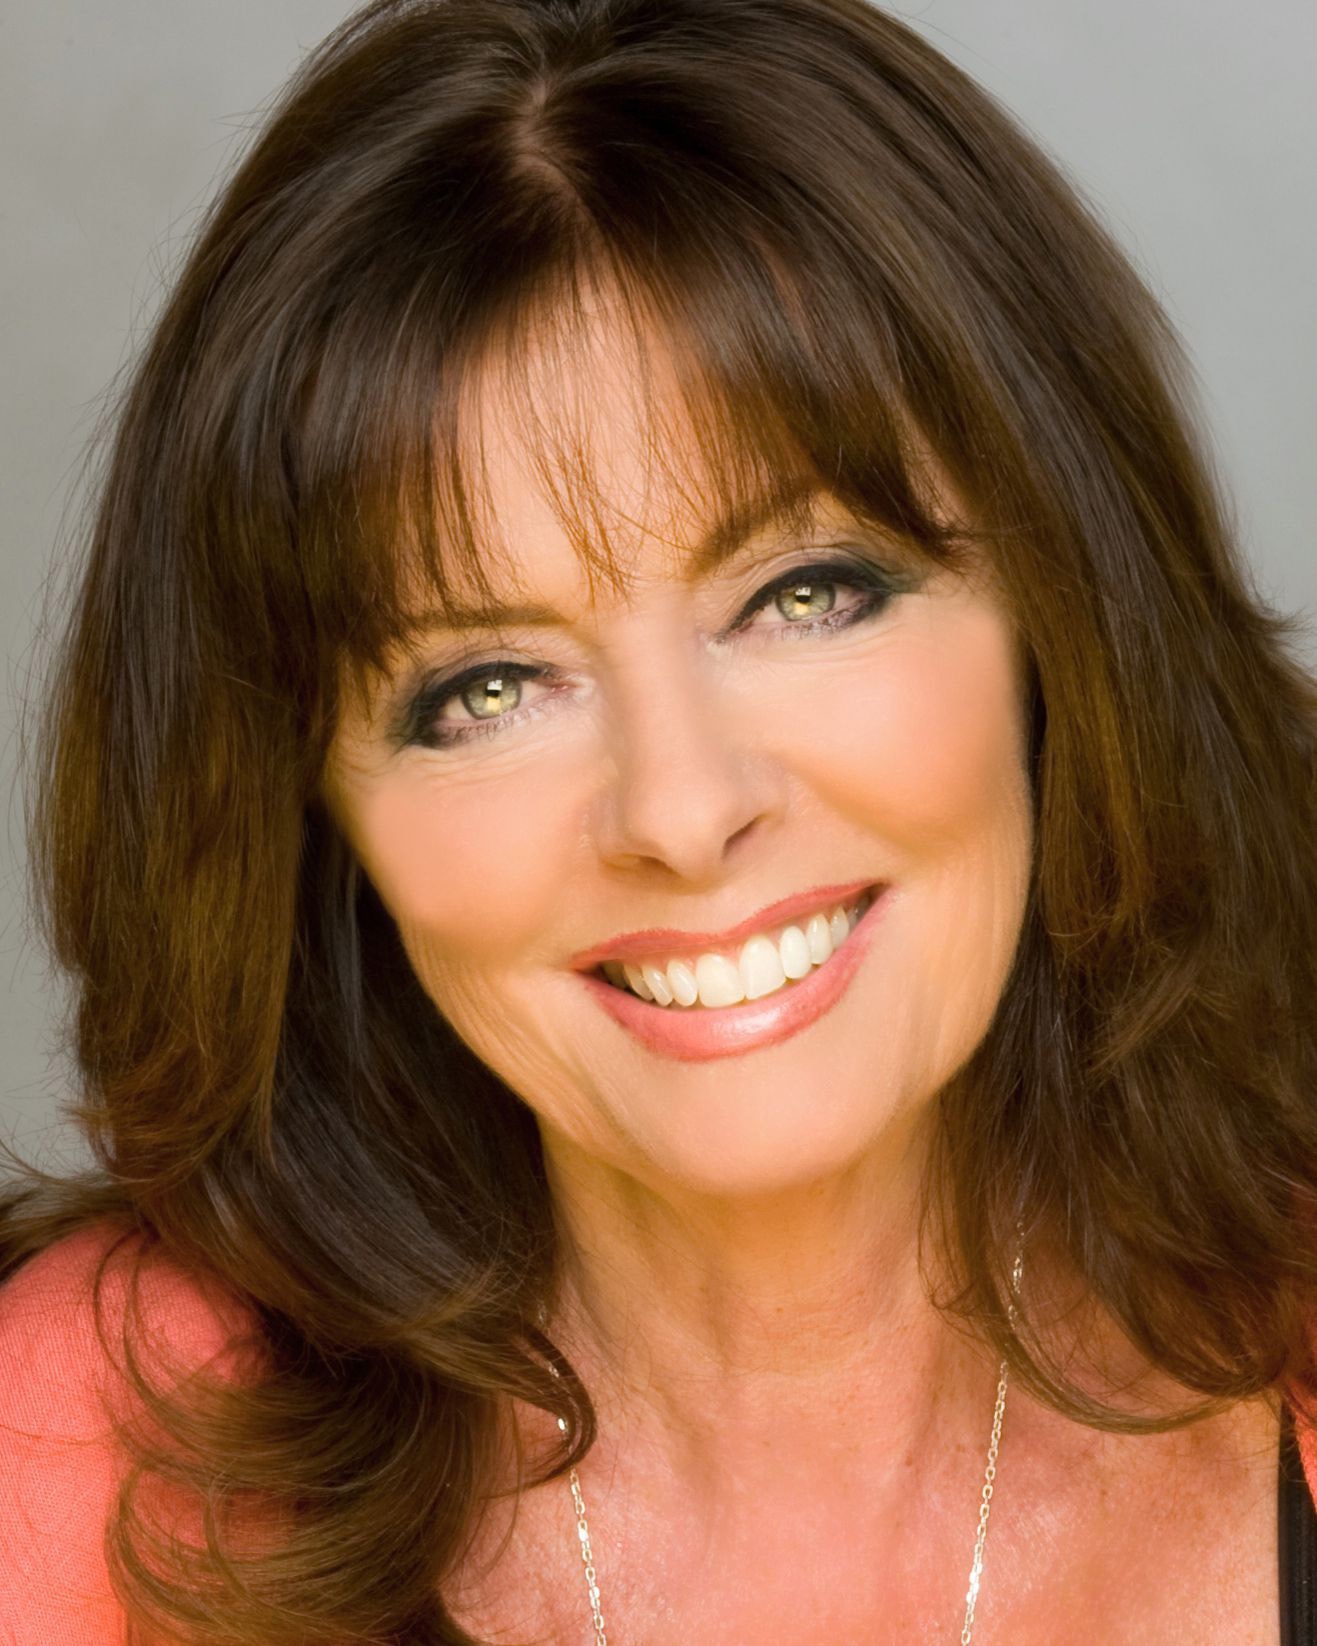 vicki michelle dance studio